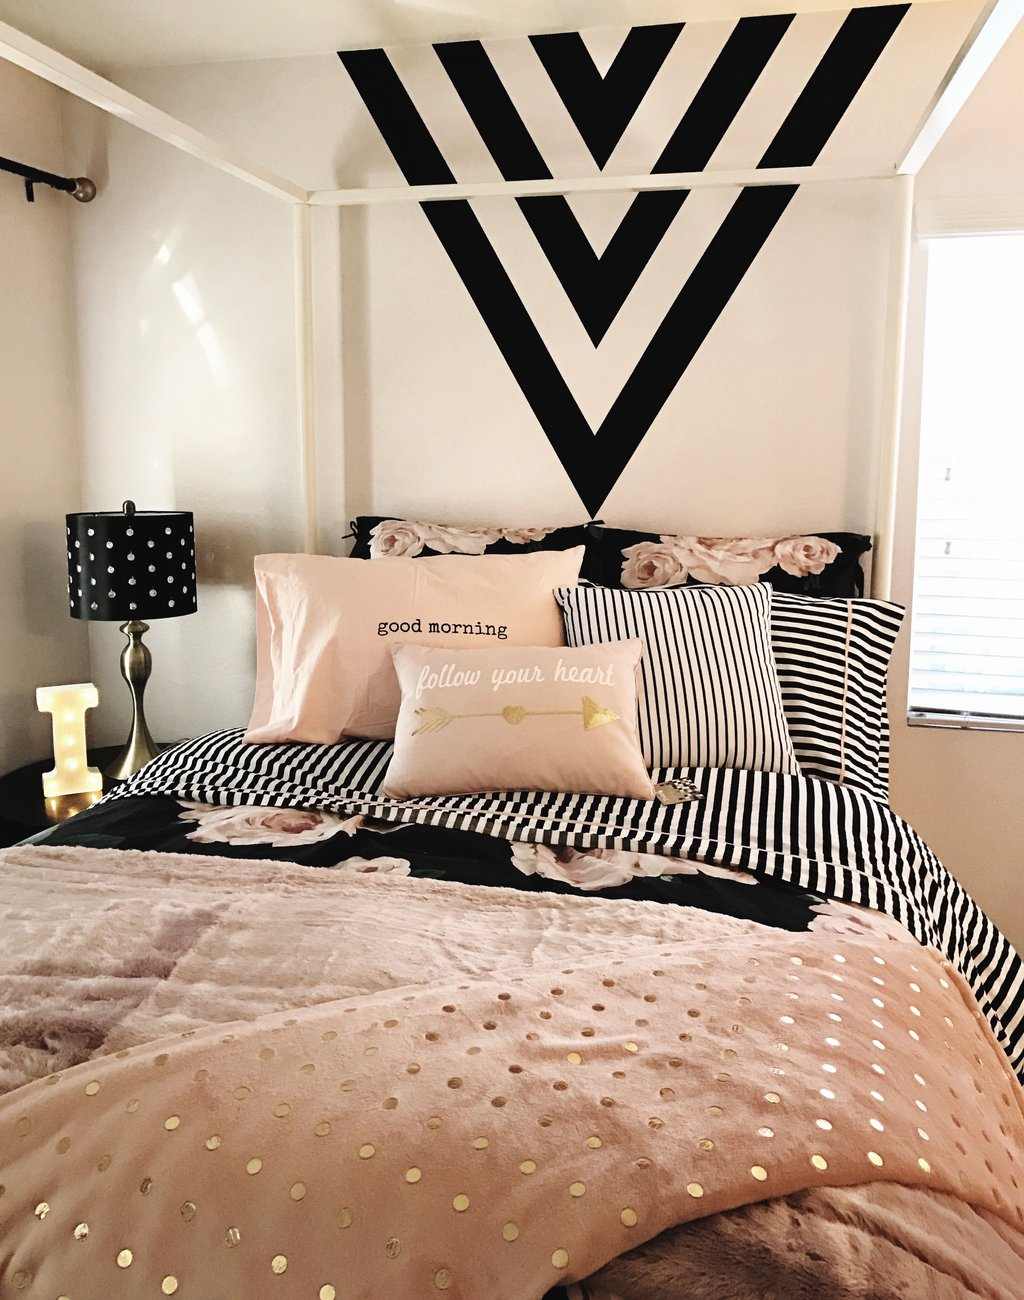 Girl Room Black Gold Pink Black Paint Feature Wall Comfort Teen Bedroom Furniture, Simple Step Mood Boost For Teenagers